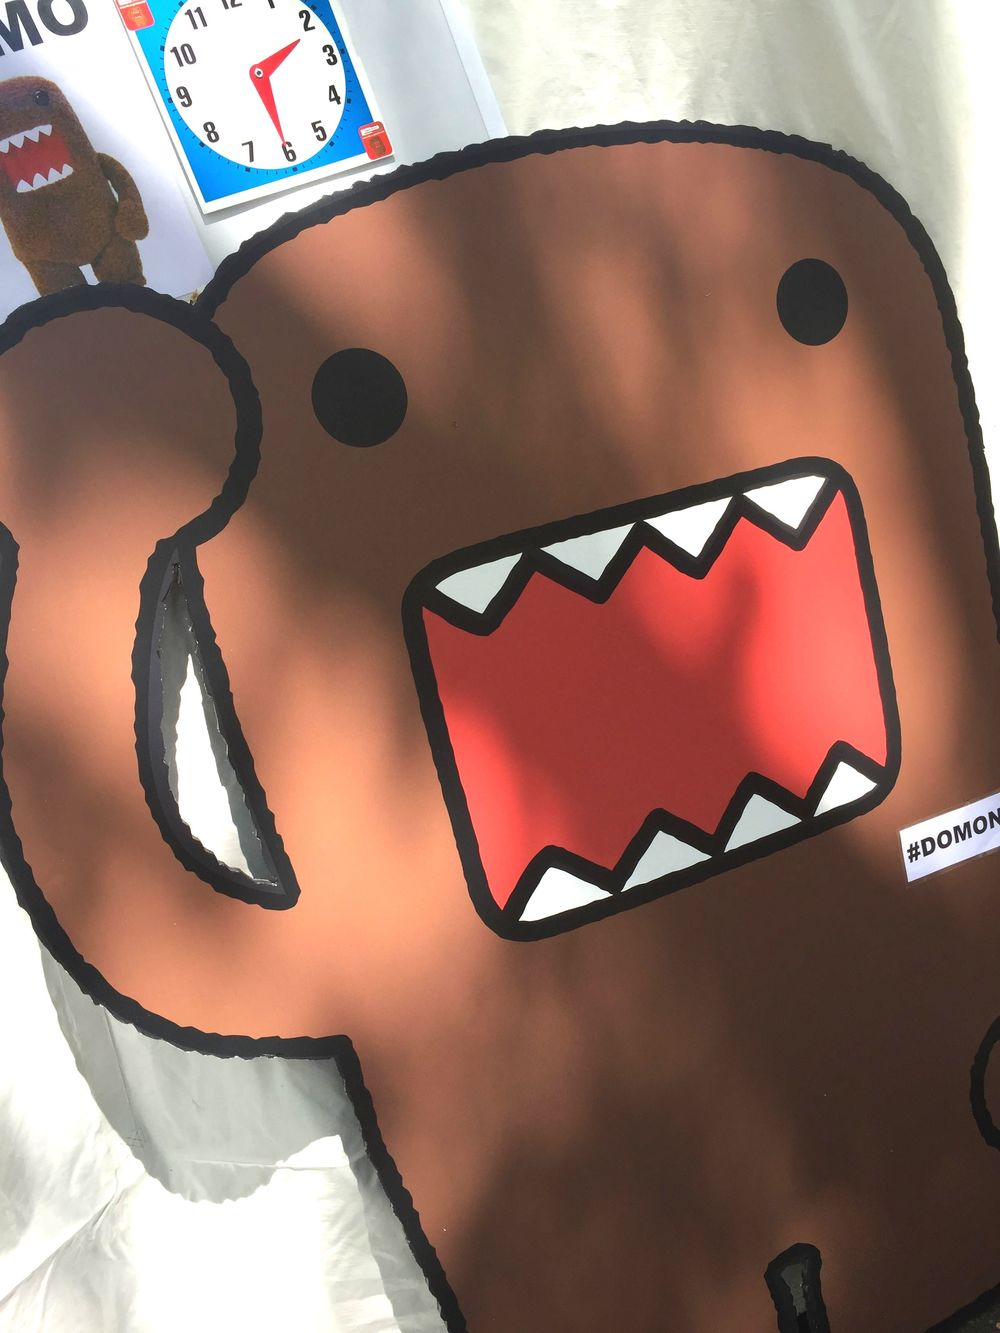 Photo booth featuring Domo, the official mascot of Japan public broadcasting, NHK